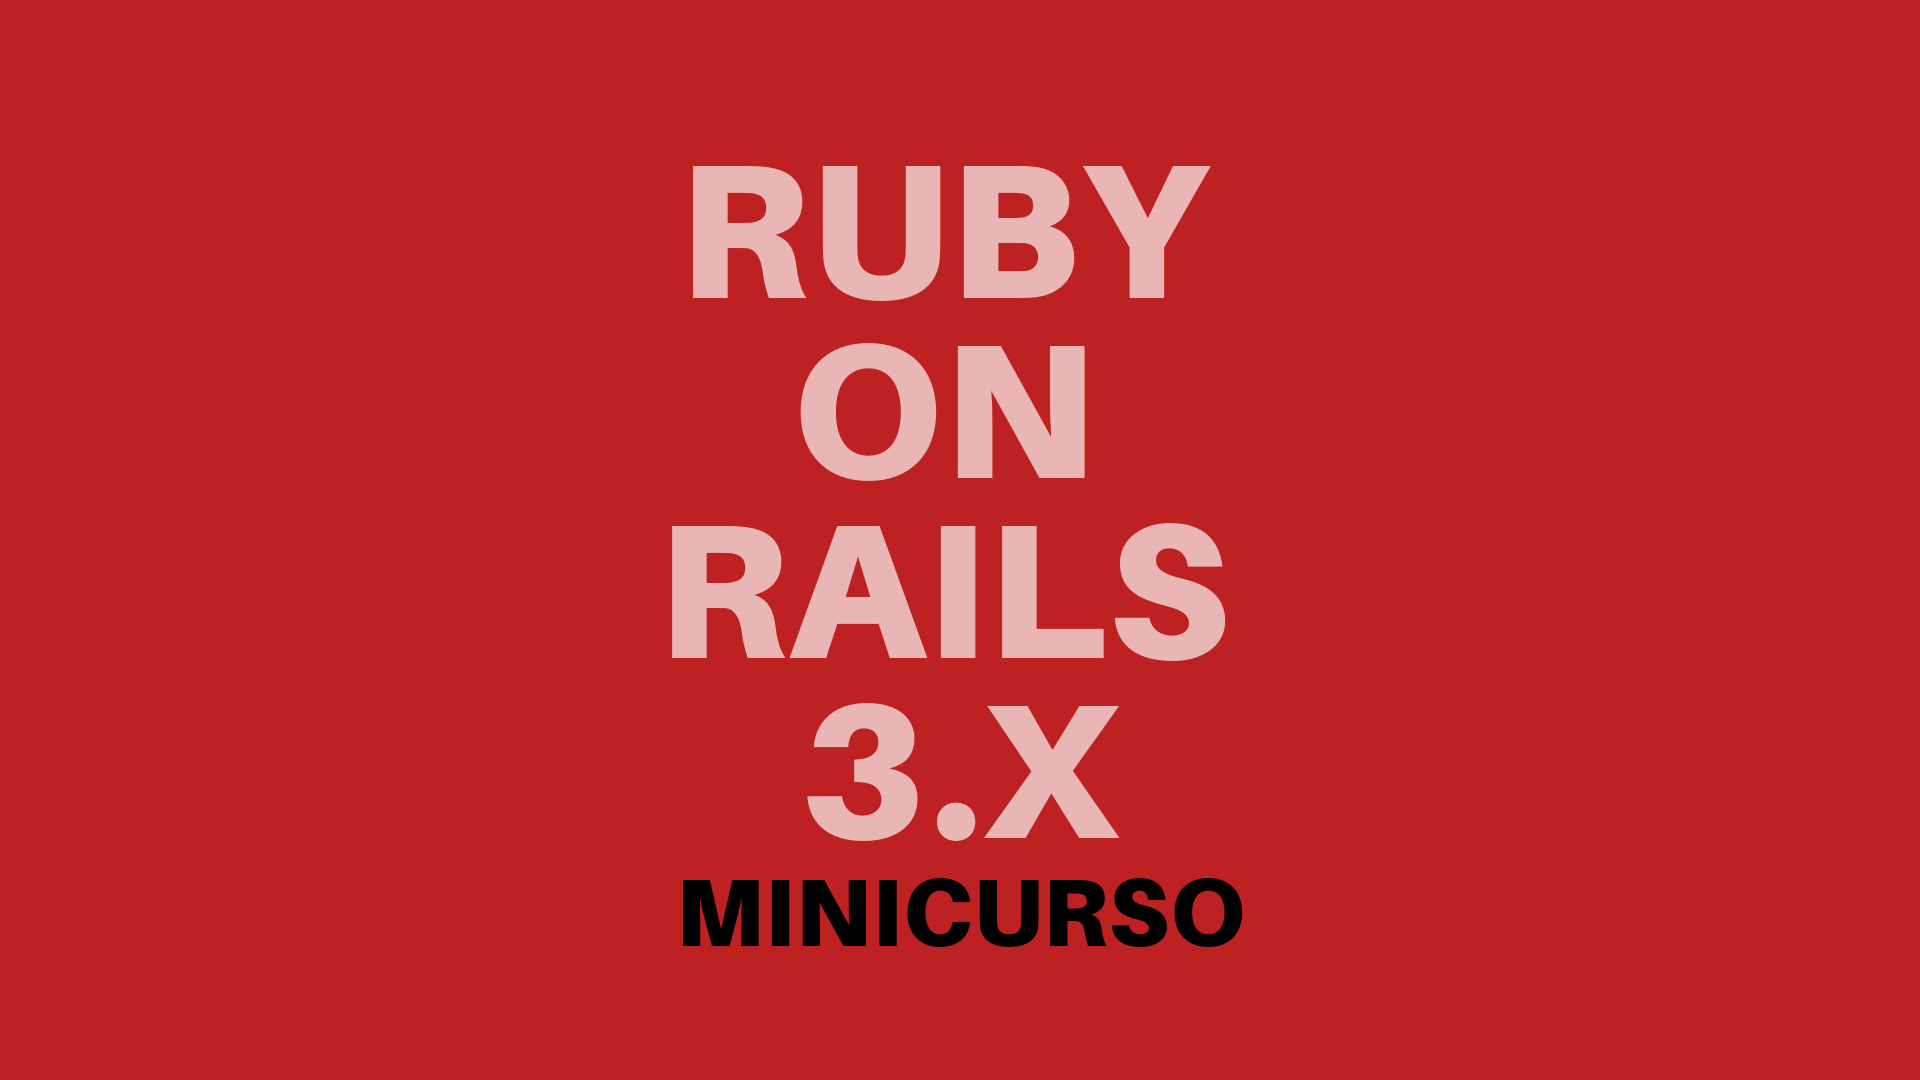 Minicurso de Ruby on Rails para iniciantes